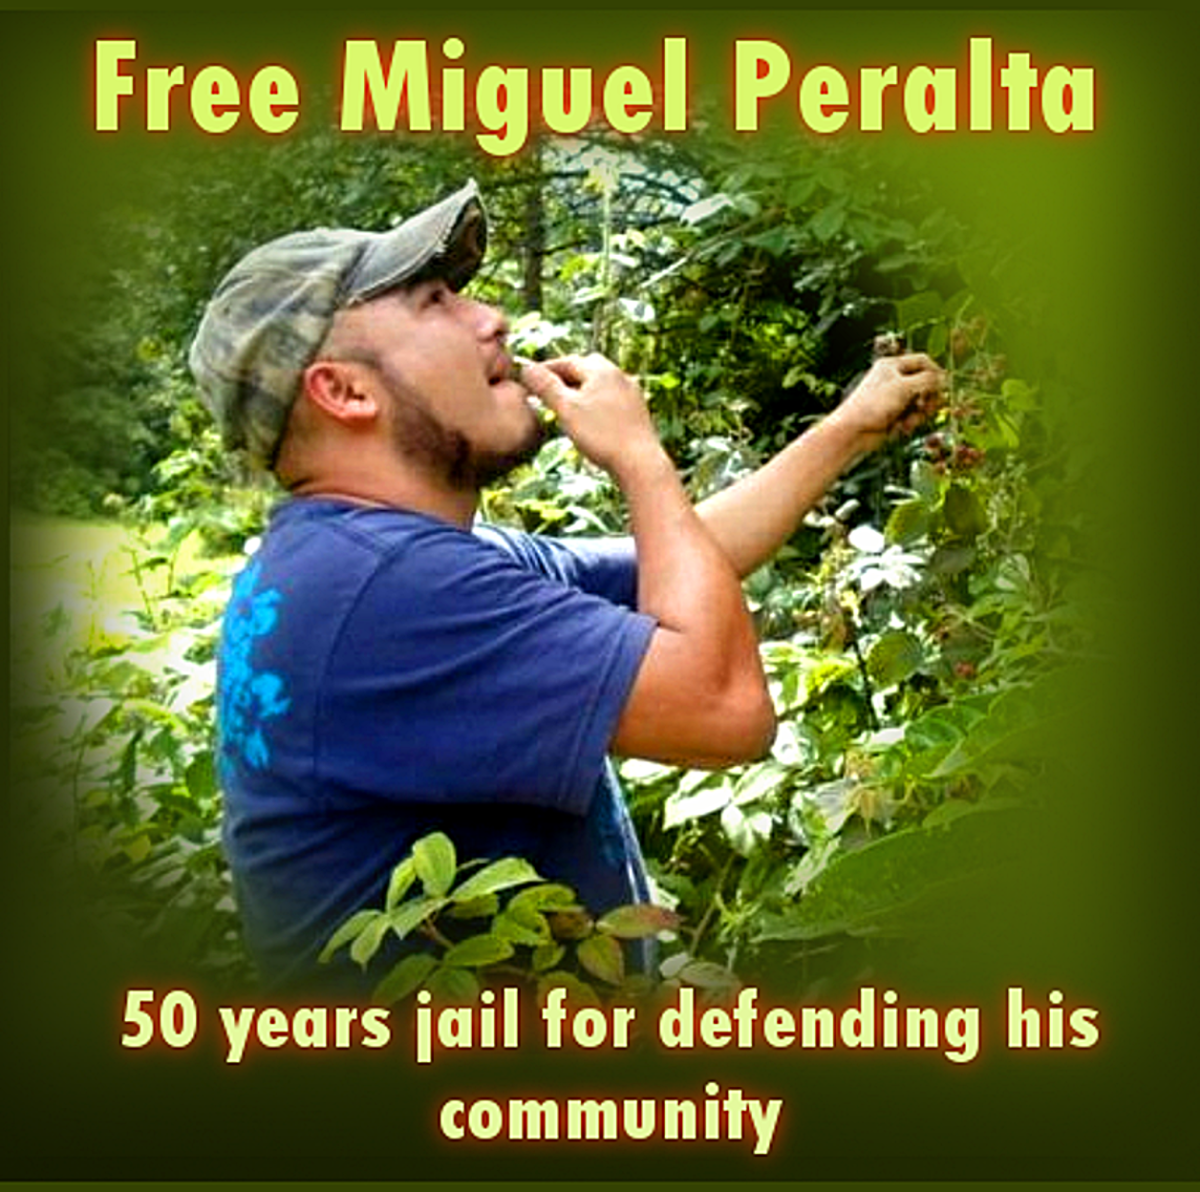 Resisting 50 years jail for Defending Community.. by Miguel Peralta